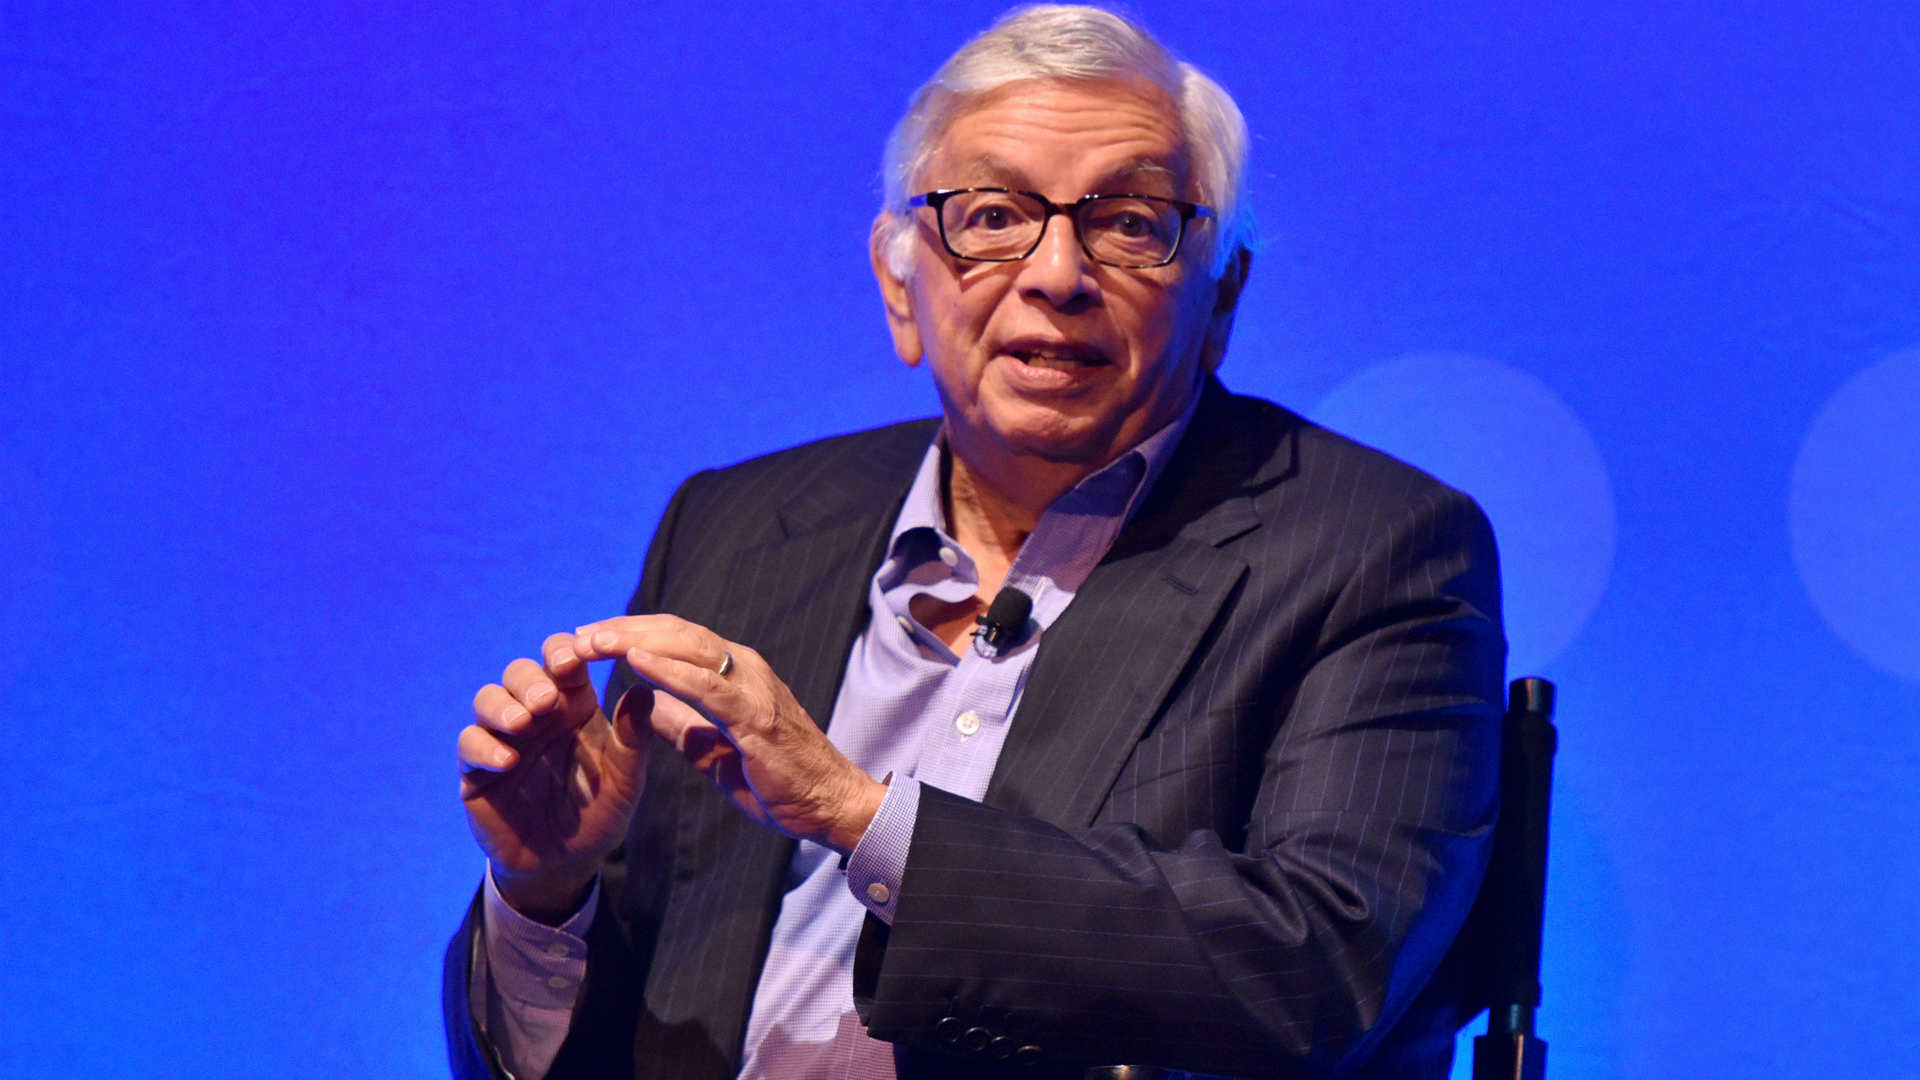 David Stern Believes NBA Should Remove Marijuana From Ban List